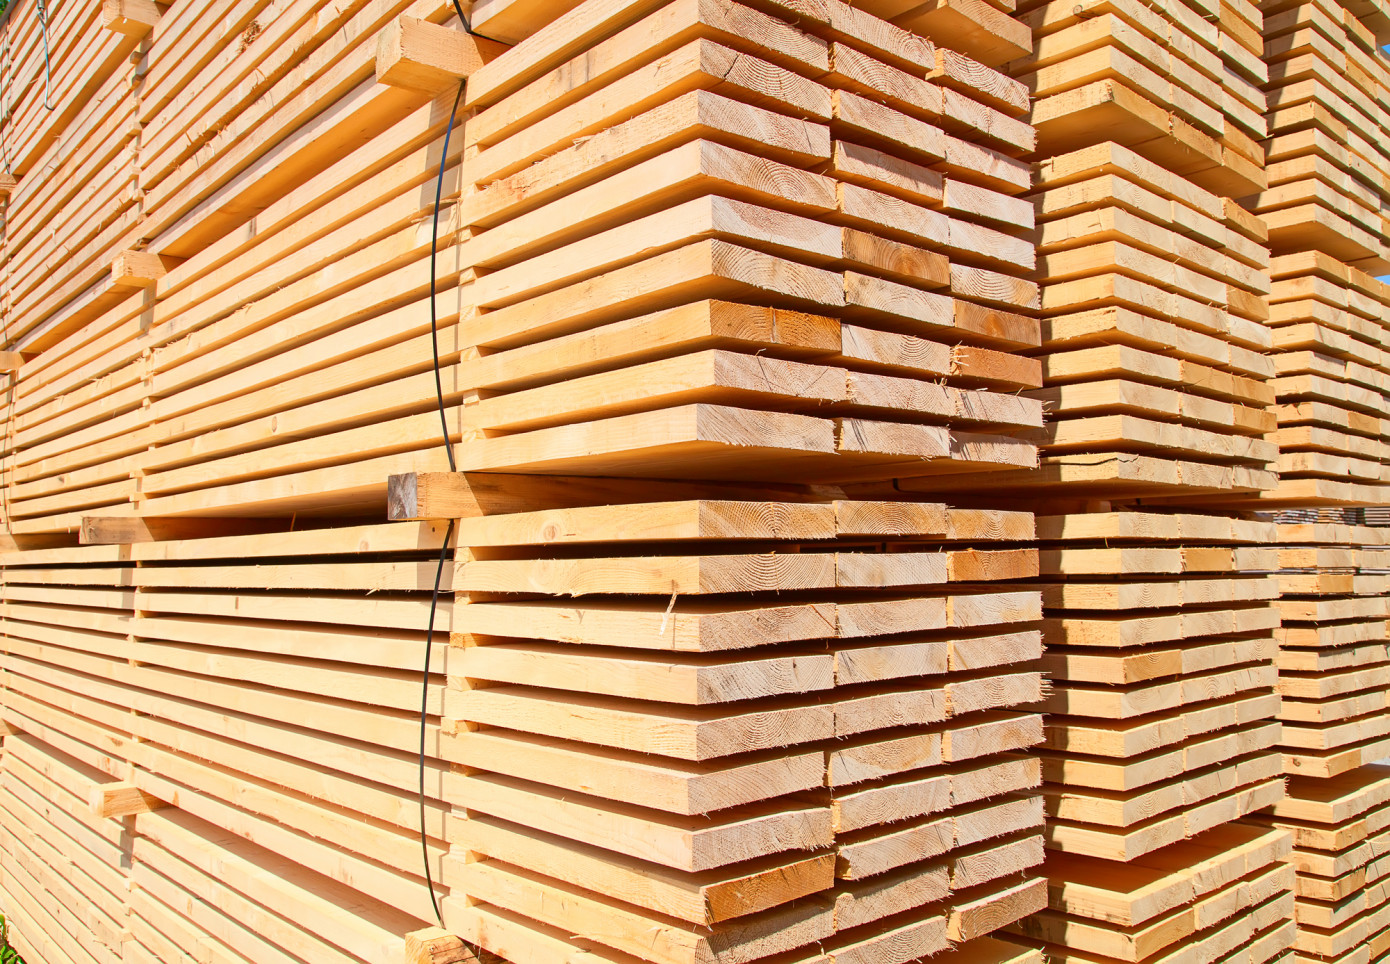 Canfor to invest $160 million in new sawmill in Louisiana and stop greenfield project in Georgia